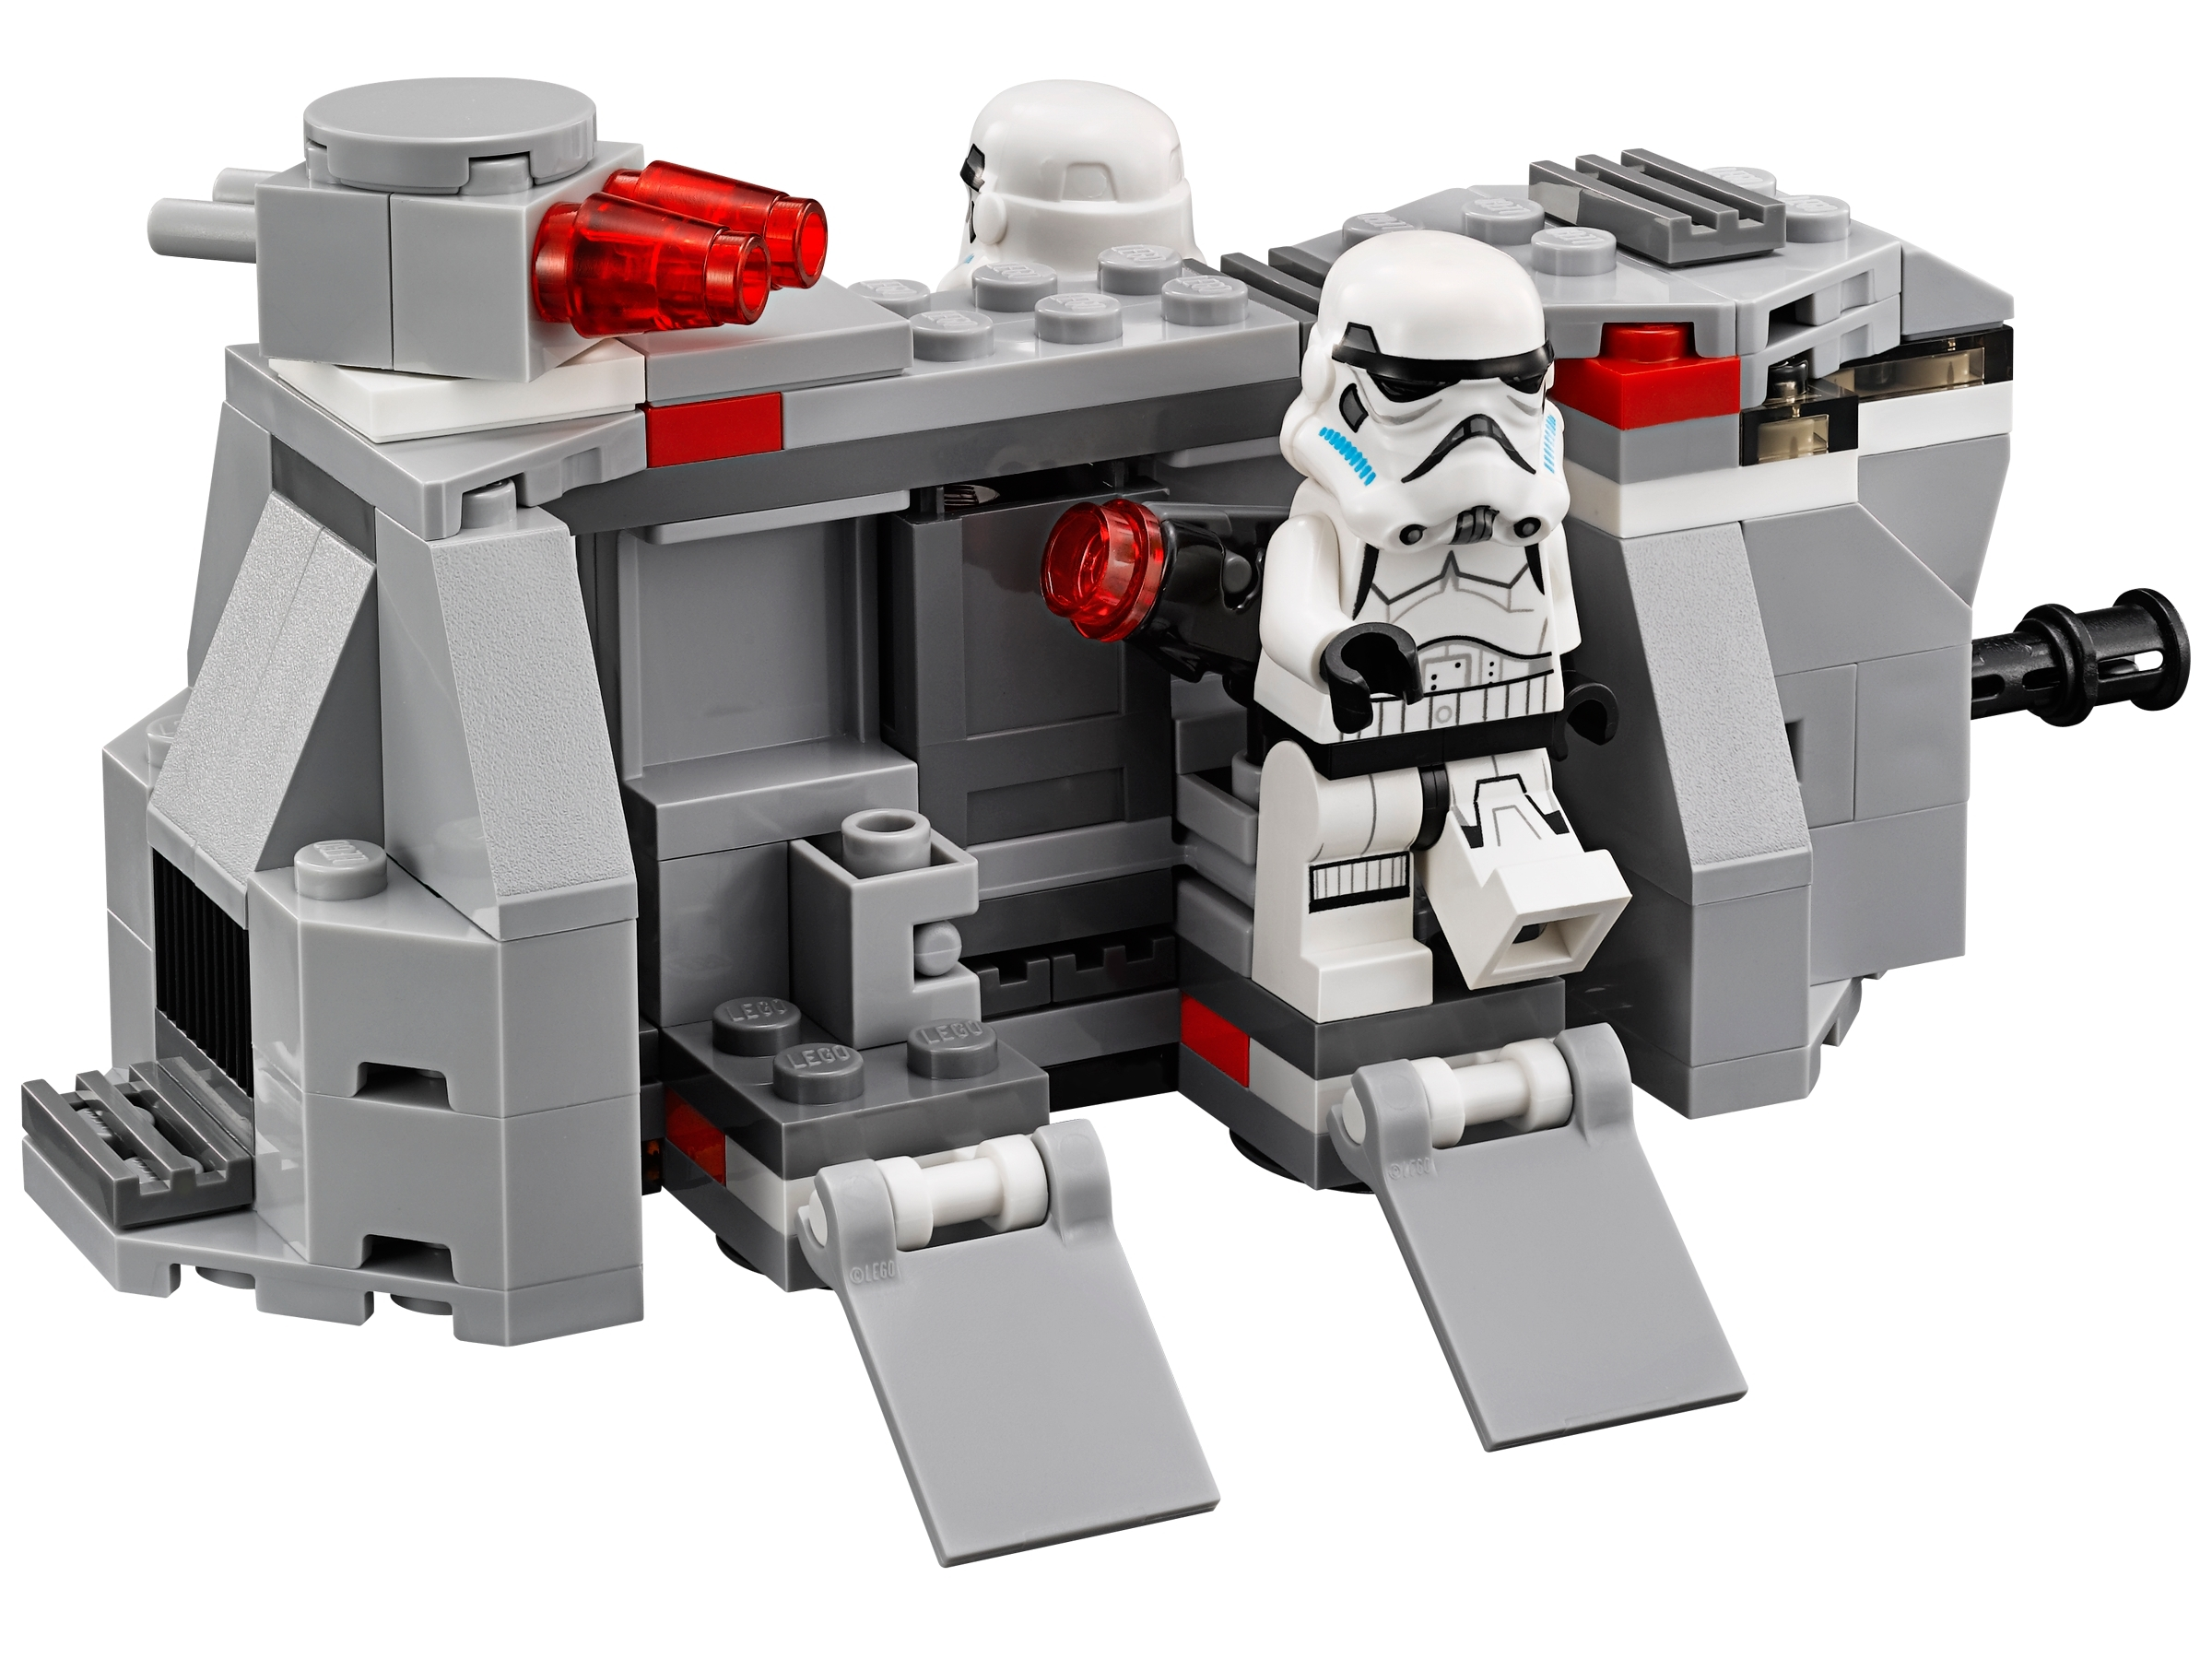 LEGO 75078 Imperial Troop Transport Star Wars Set Stormtroopers Rebel Empire